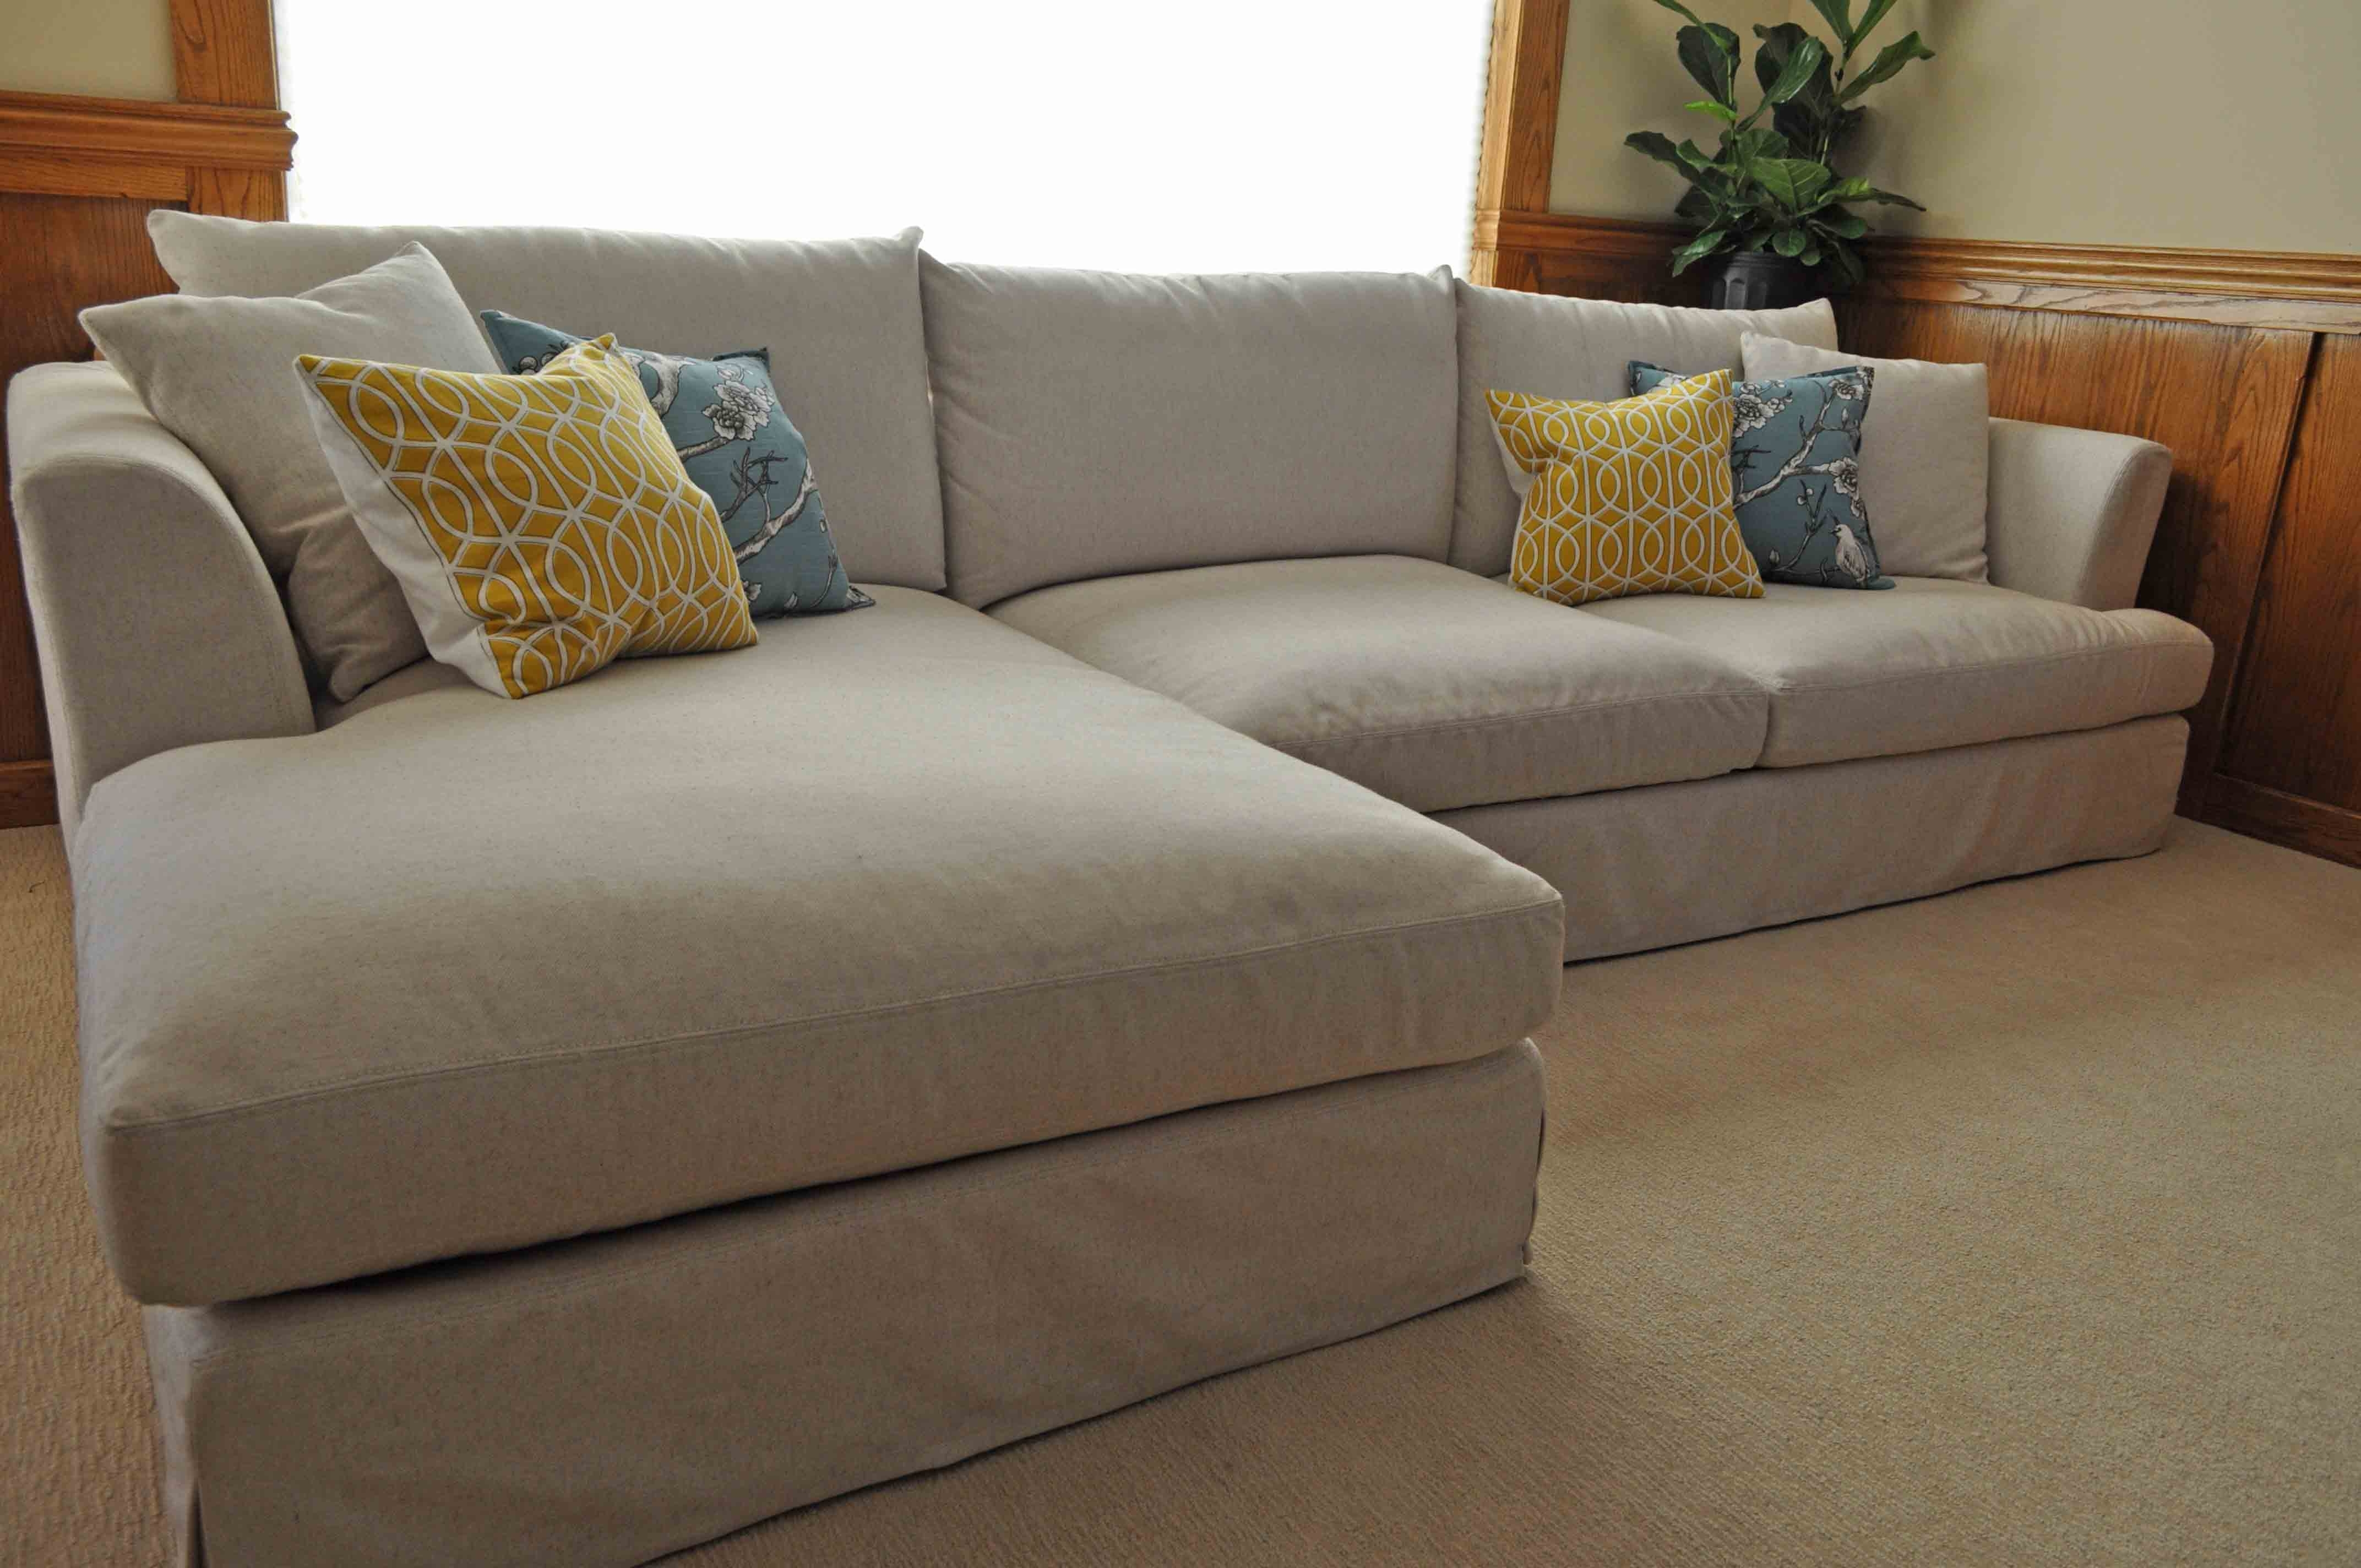 Recent Decorating: Using Tremendous Oversized Couch For Lovely Living With Regard To Deep Seat Sectionals With Chaise (View 11 of 15)